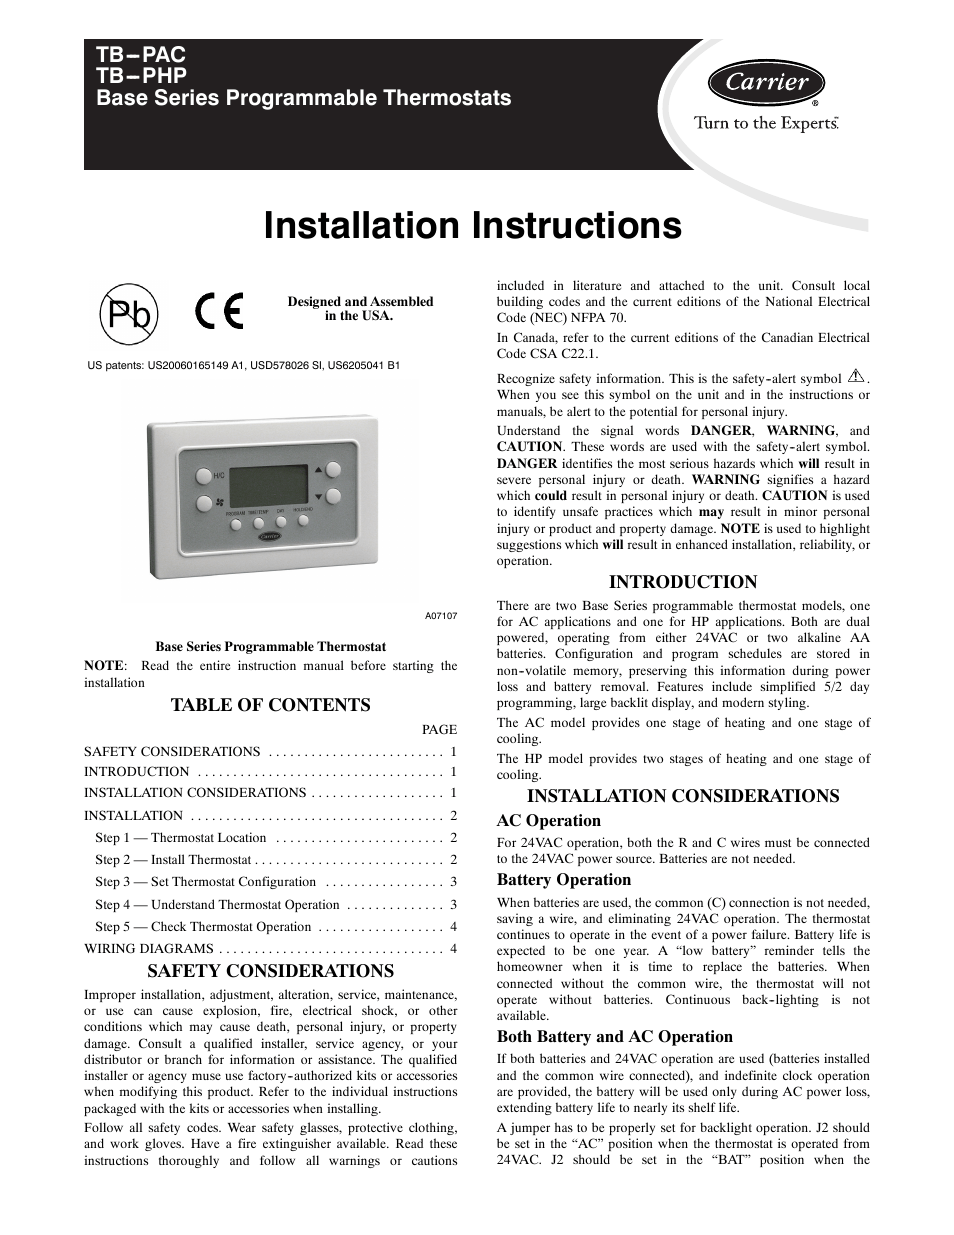 medium resolution of carrier digital thermostat wiring diagram